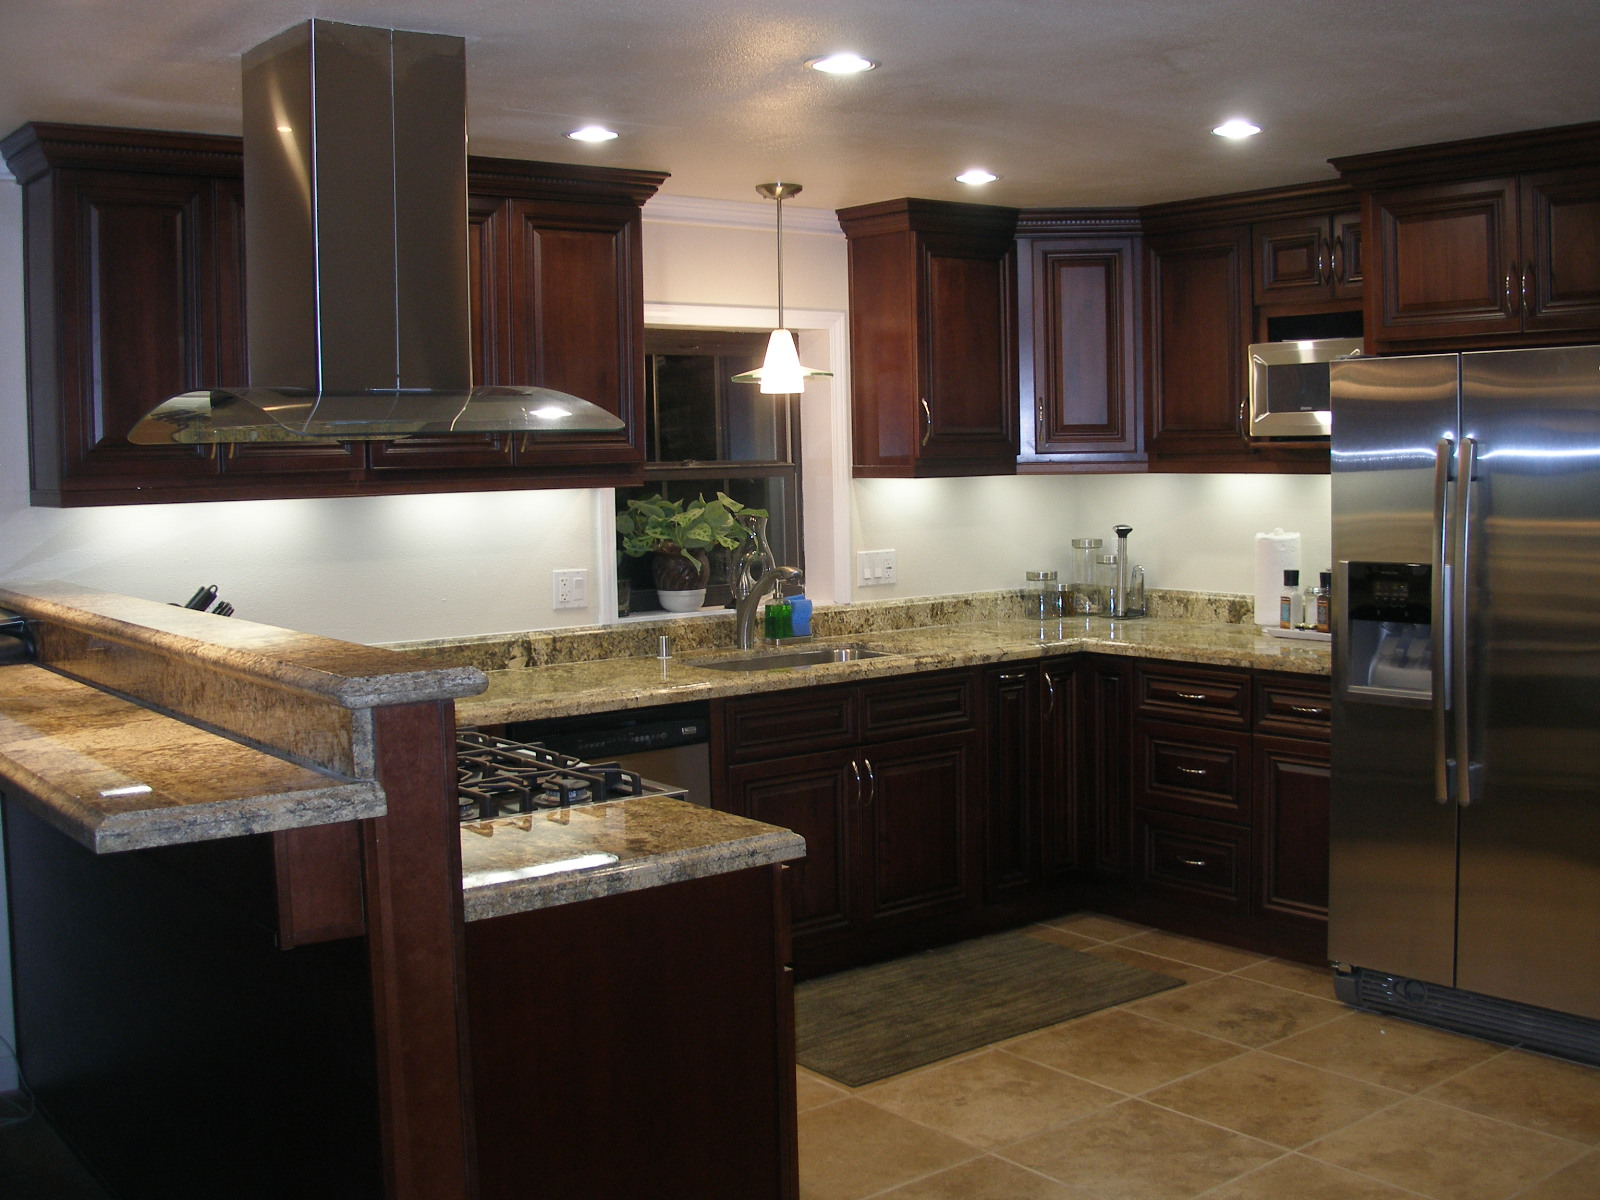 Kitchen remodeling brad t jones construction for Kitchen improvement ideas